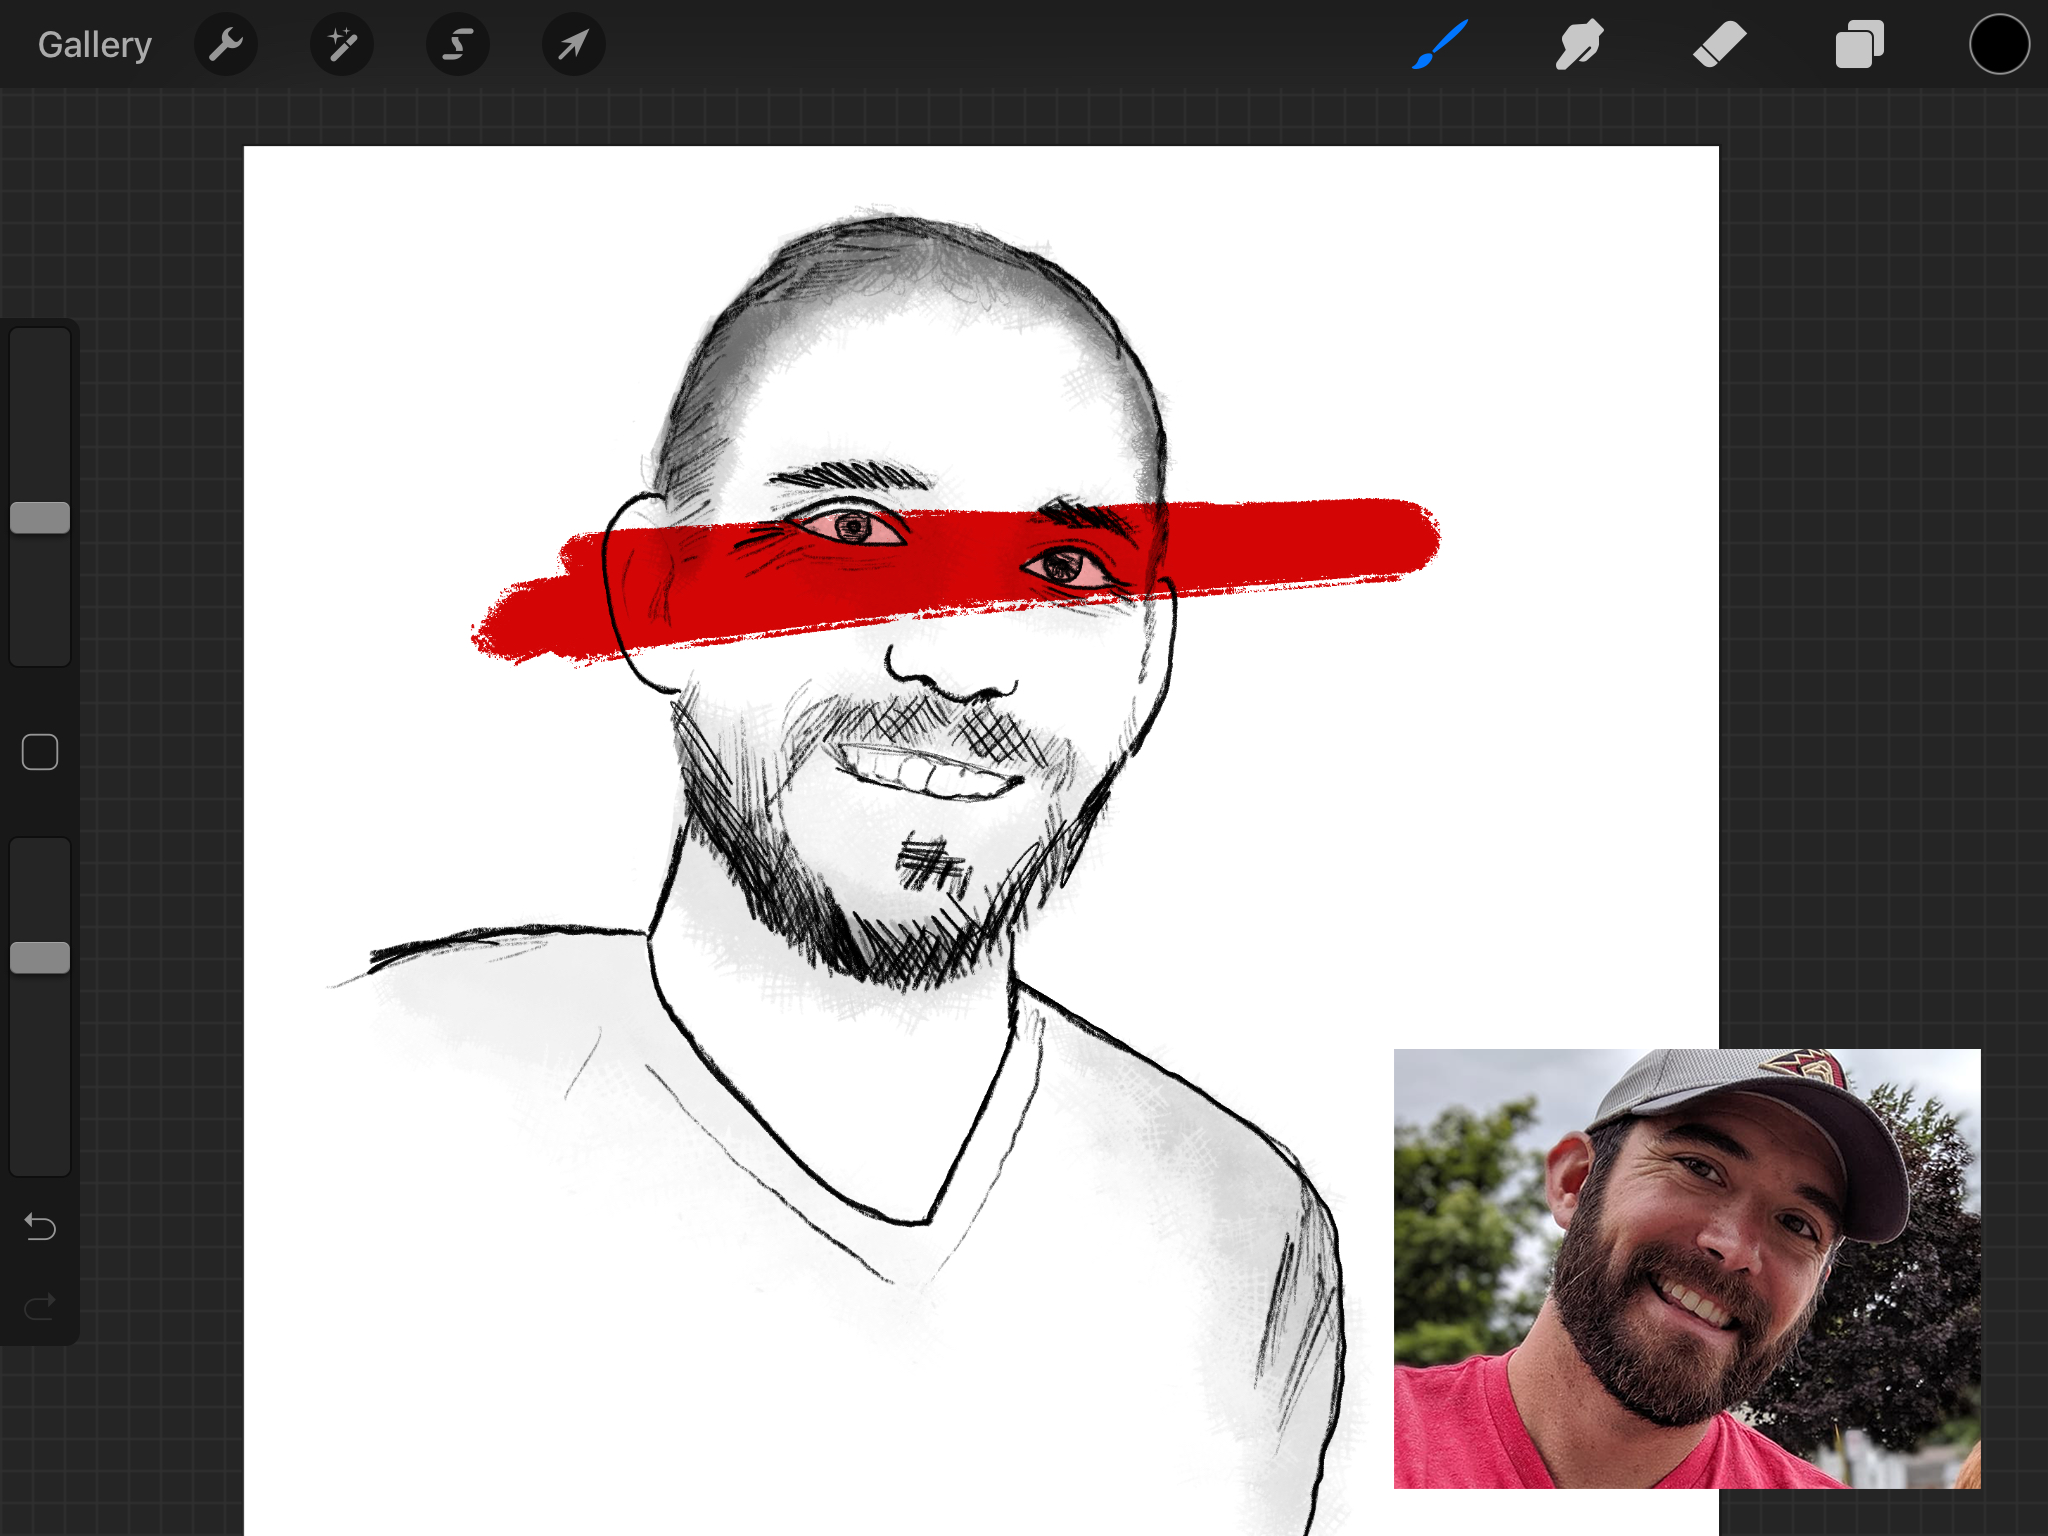 My first attempt was worse - If I had an extra month to put this issue together, I could spend it all working on this portrait. It really bugs me how off this image is.